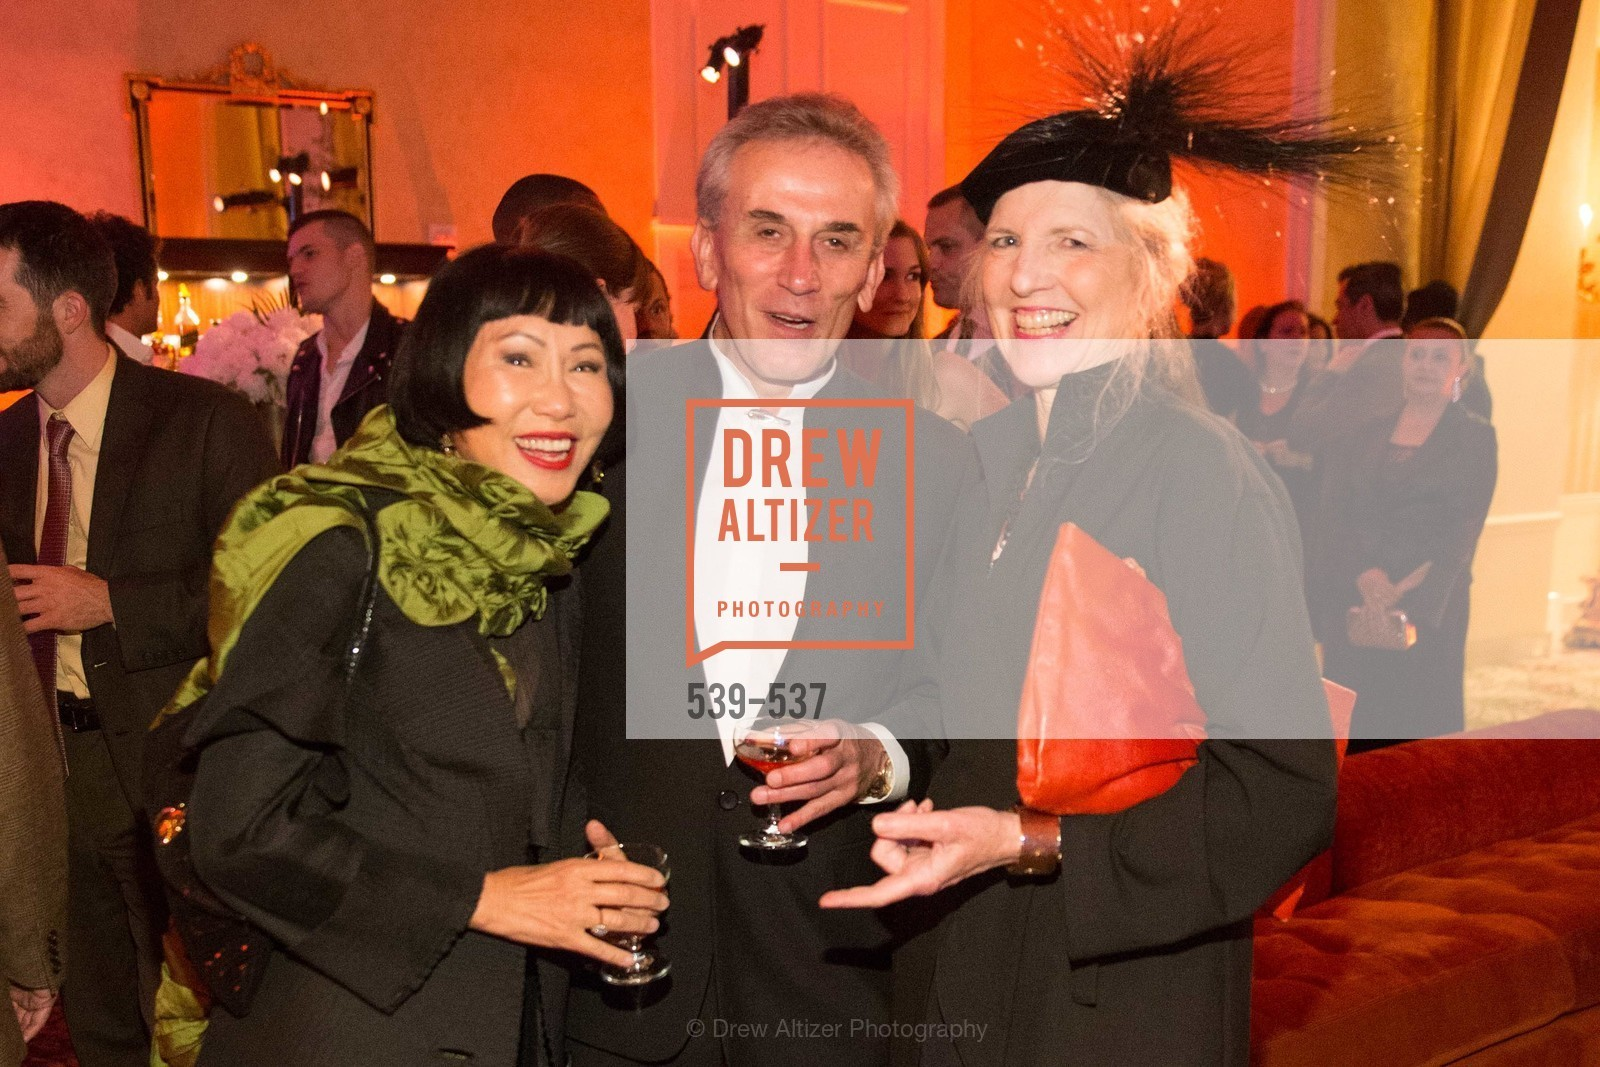 Amy Tan, Lou DeMattei, Leah Garchick, TOP OF THE MARK'S 75TH Anniversary Party, US, November 6th, 2014,Drew Altizer, Drew Altizer Photography, full-service agency, private events, San Francisco photographer, photographer california